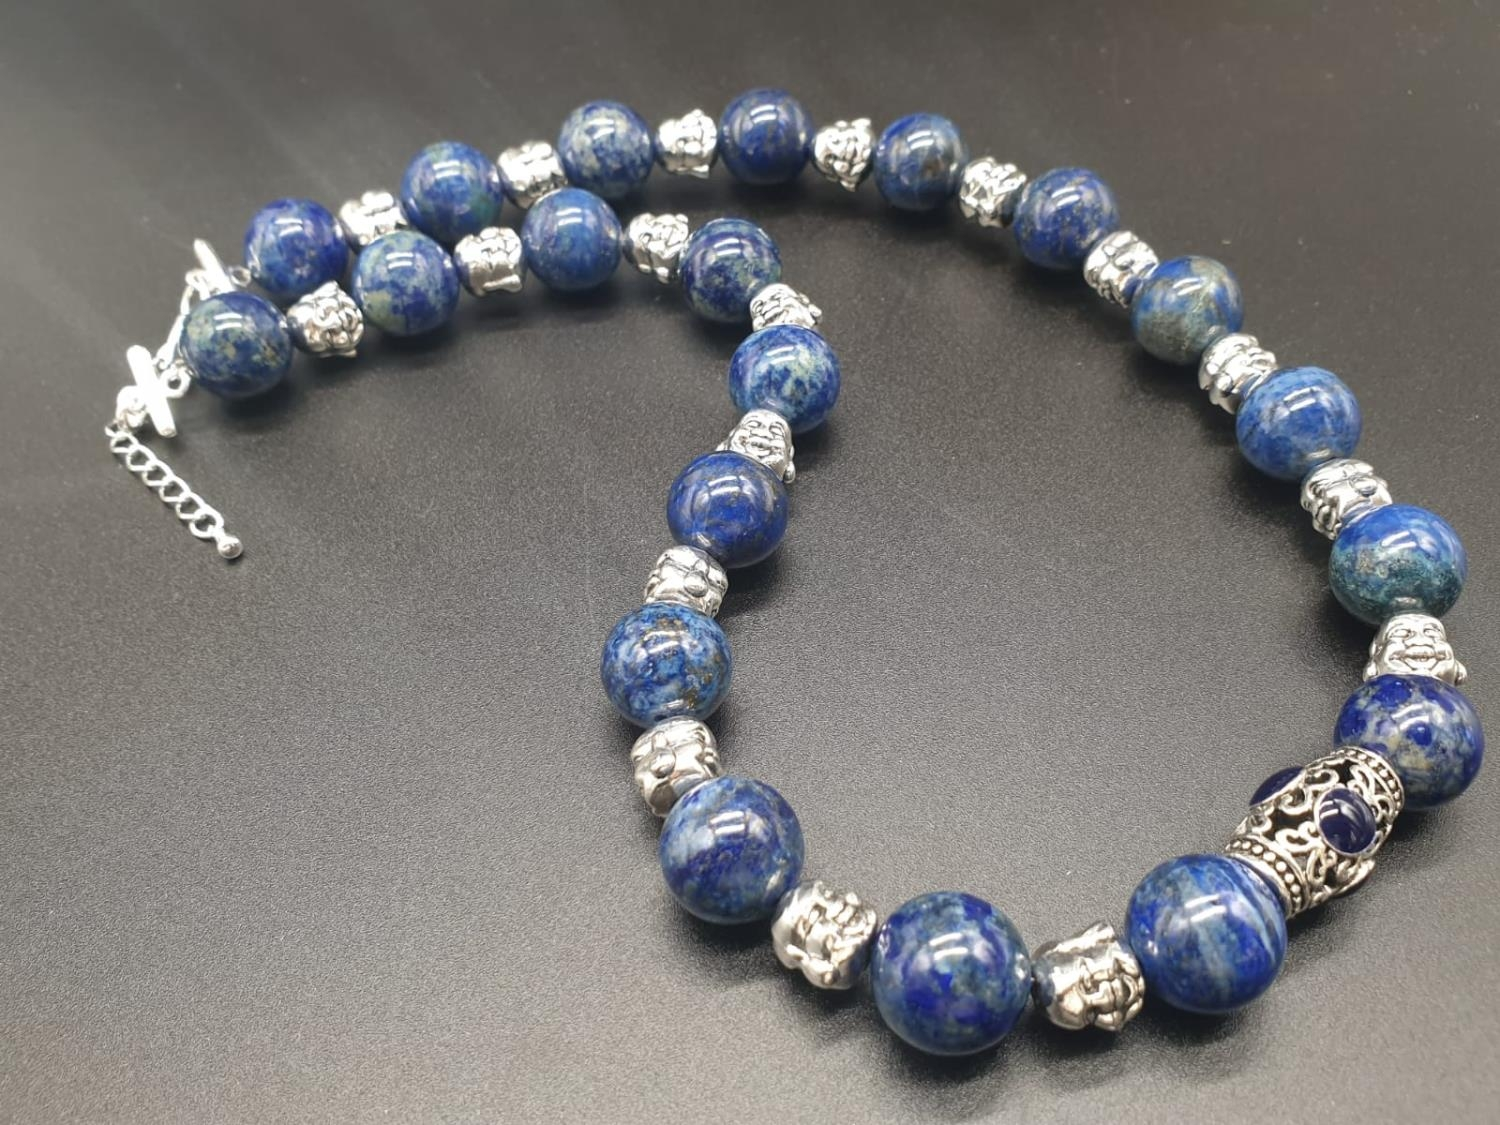 A Tibetan Buddhist lapis lazuli necklace and earrings set in a presentation box. Necklace length: - Image 3 of 11